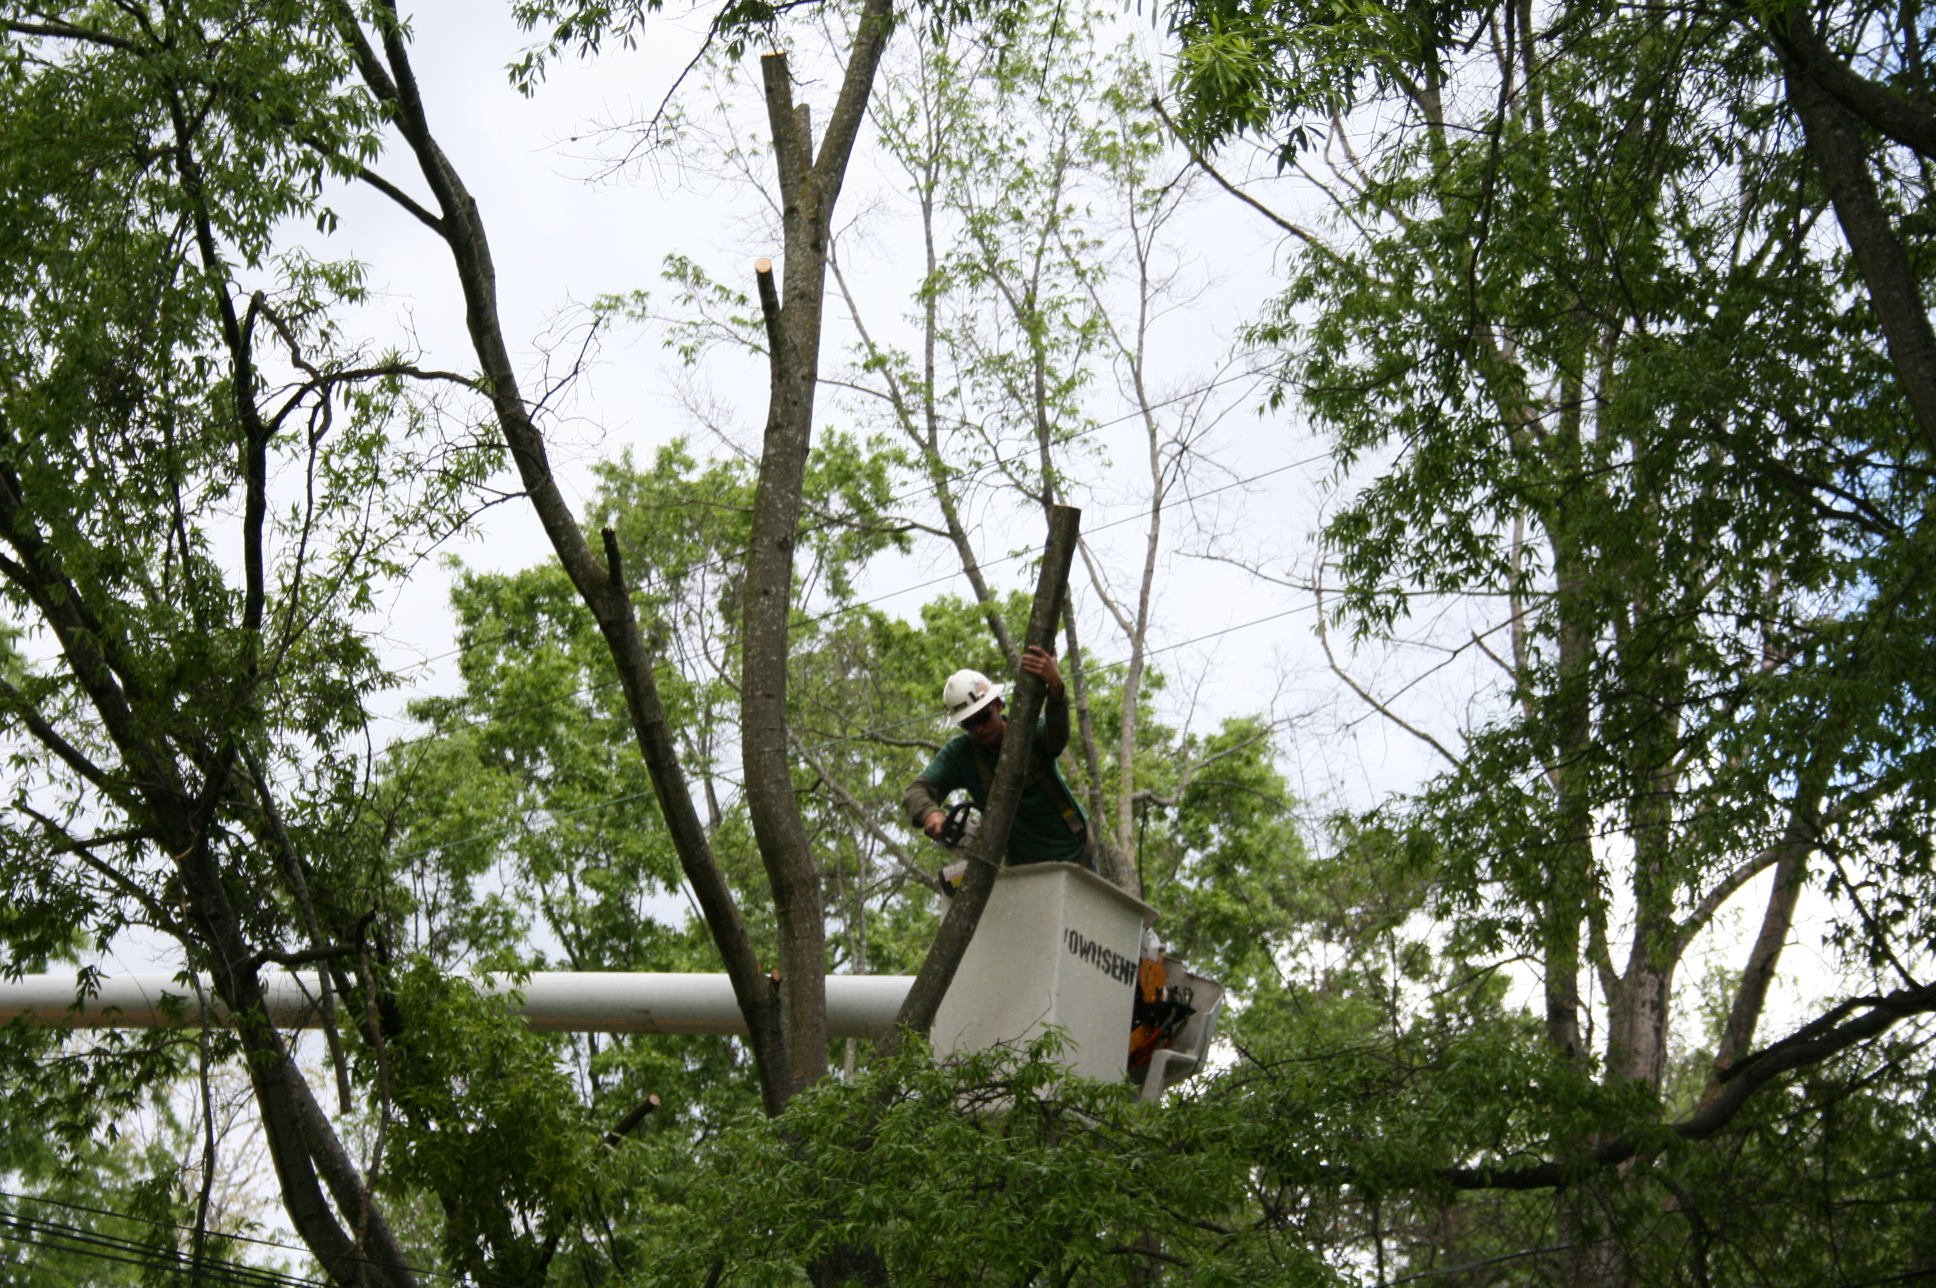 Image Showing Are Homeowners Liable for Tree Care Accidents in Jacksonville, FL?